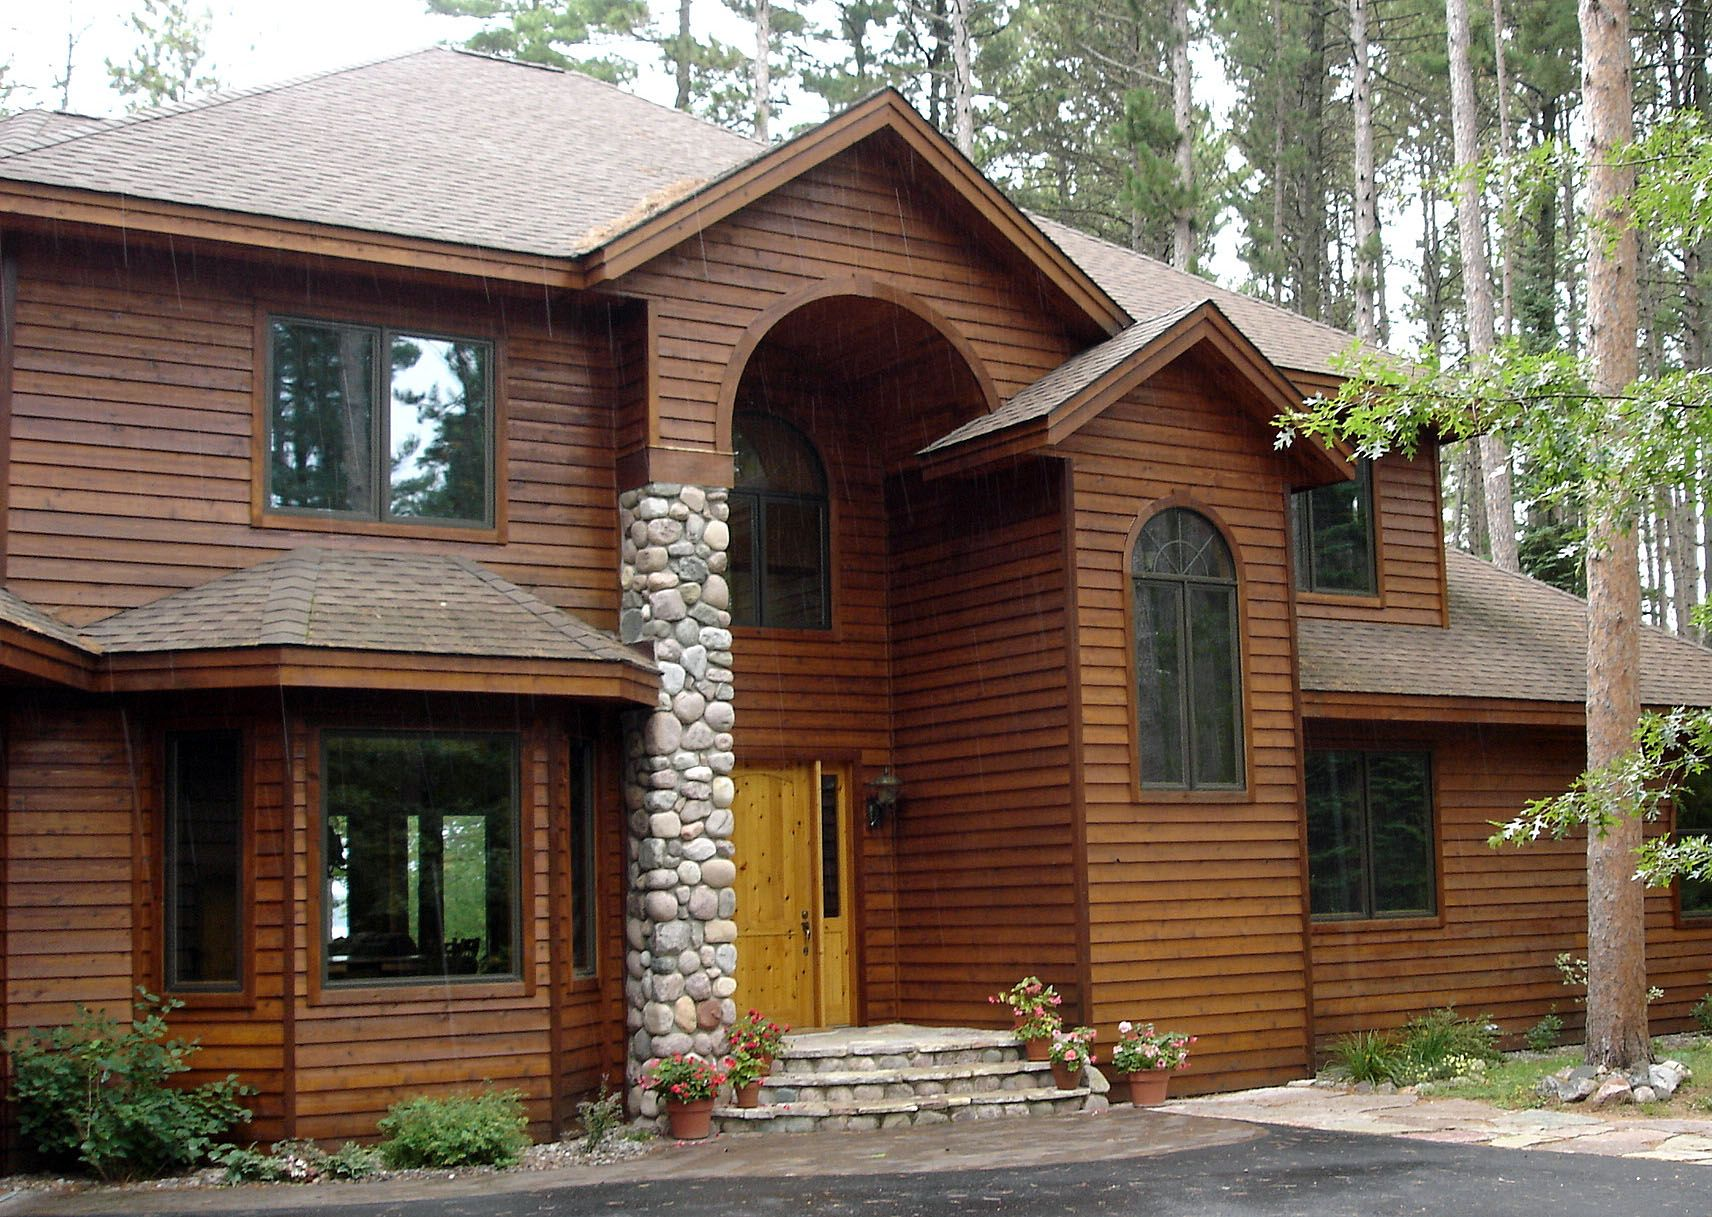 5 4 8 Tight Knot Cedar Rabbeted Bevel Sikkens 005 Natural Oak 072 Butternut Stone Houses House Exterior Cedar Siding